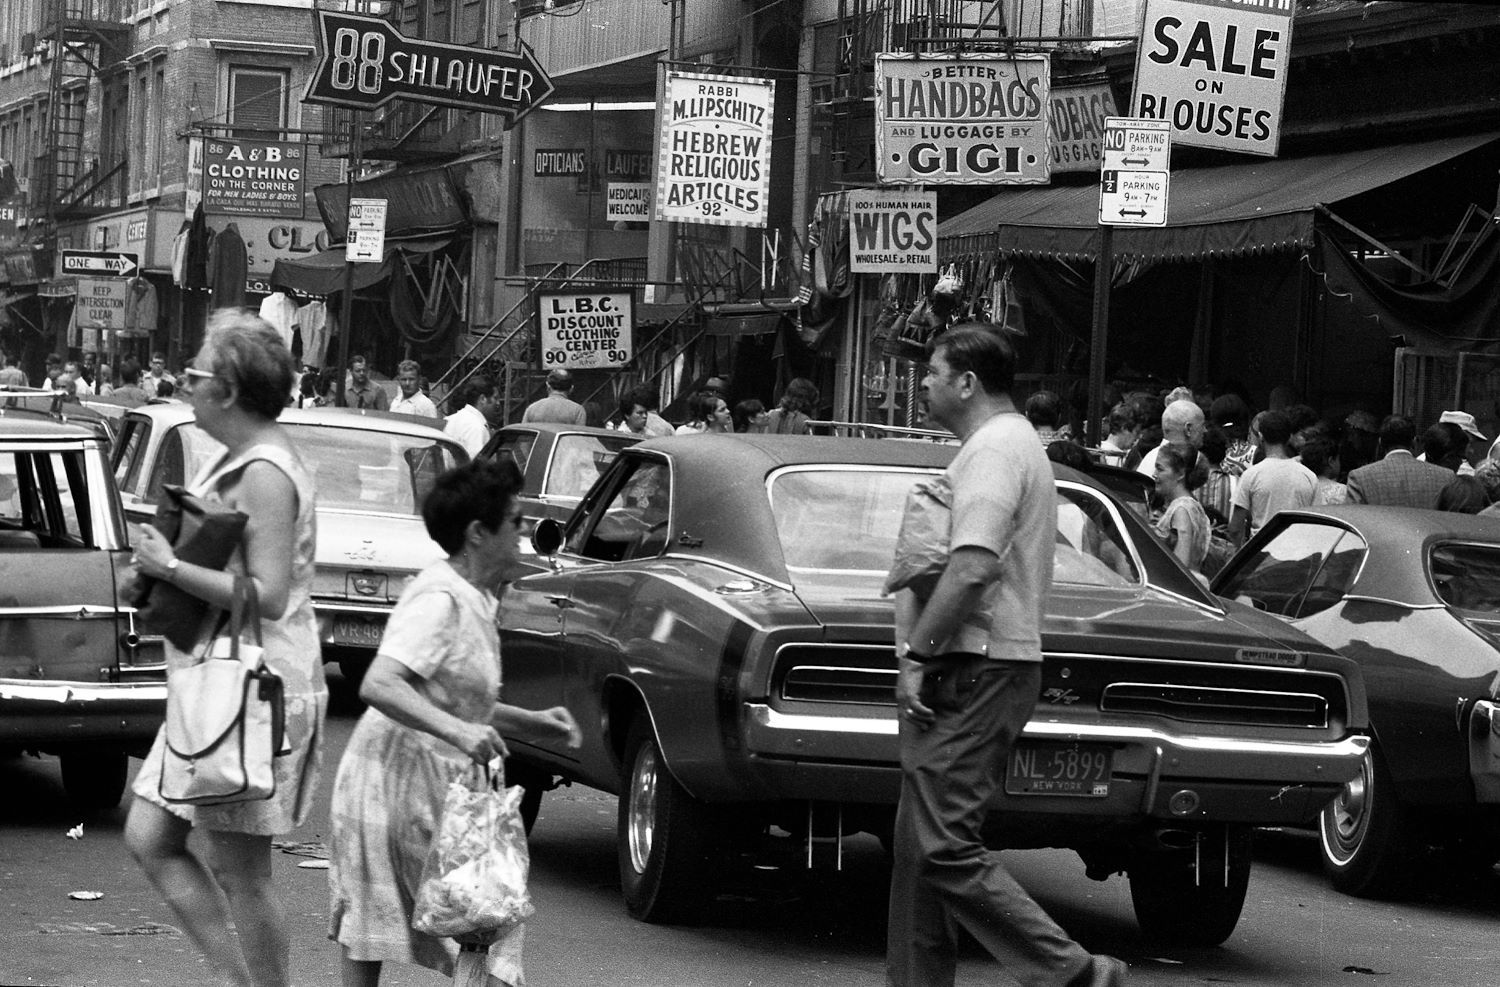 Car Dealerships In Brooklyn >> Lower East Side - 1970's | Vintage muscle cars, New york pictures, Vintage muscle